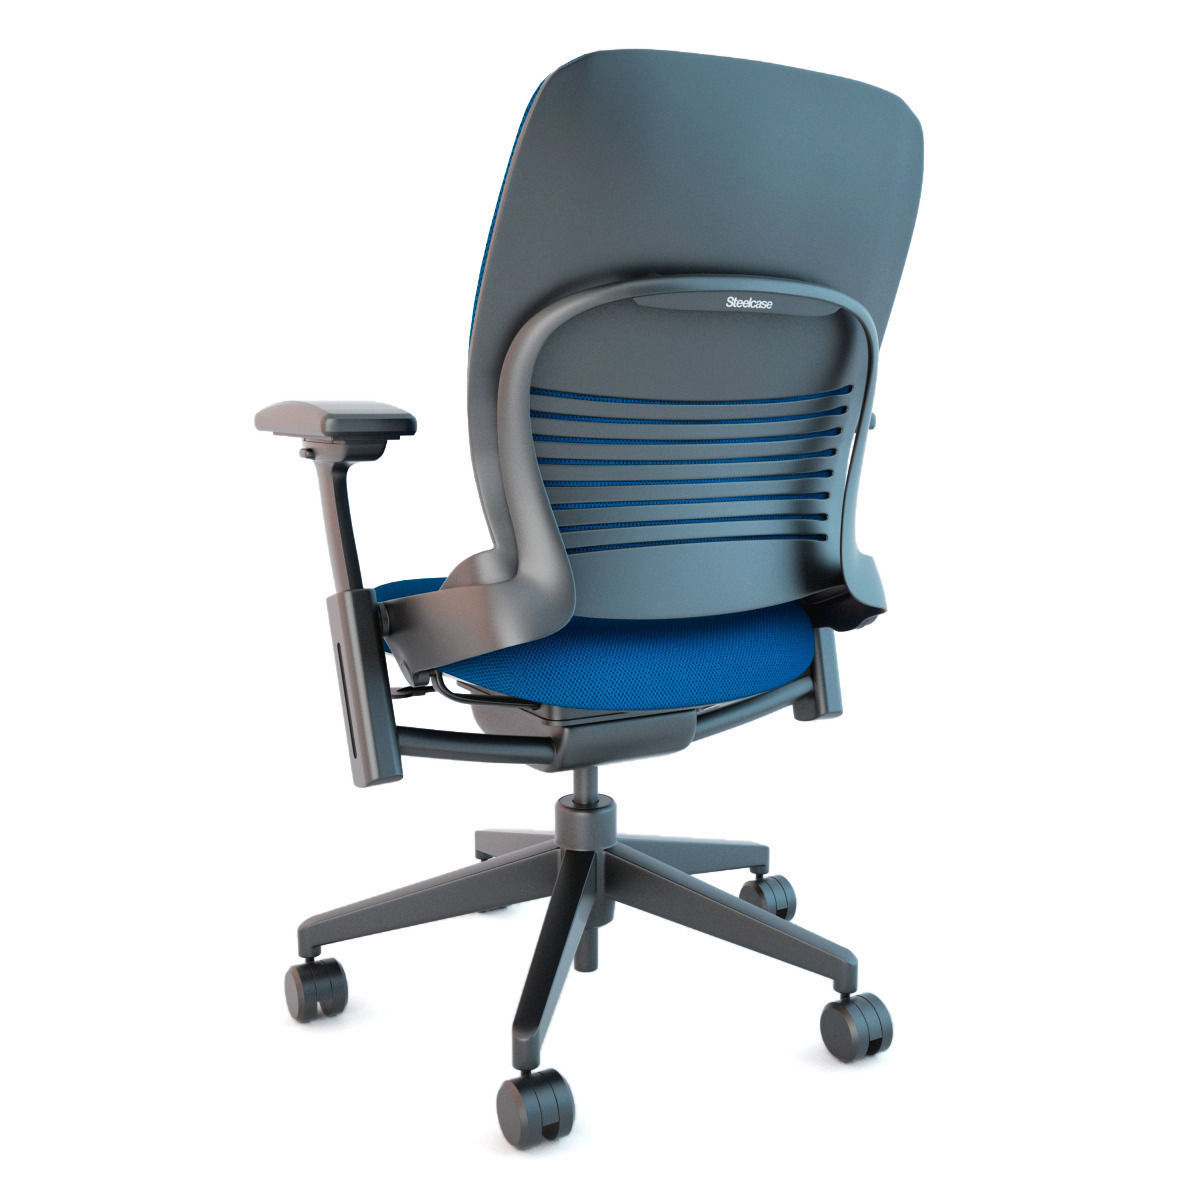 Steelcase leap office chair 3d model max obj fbx - Steelcase leap ergonomic office chair ...